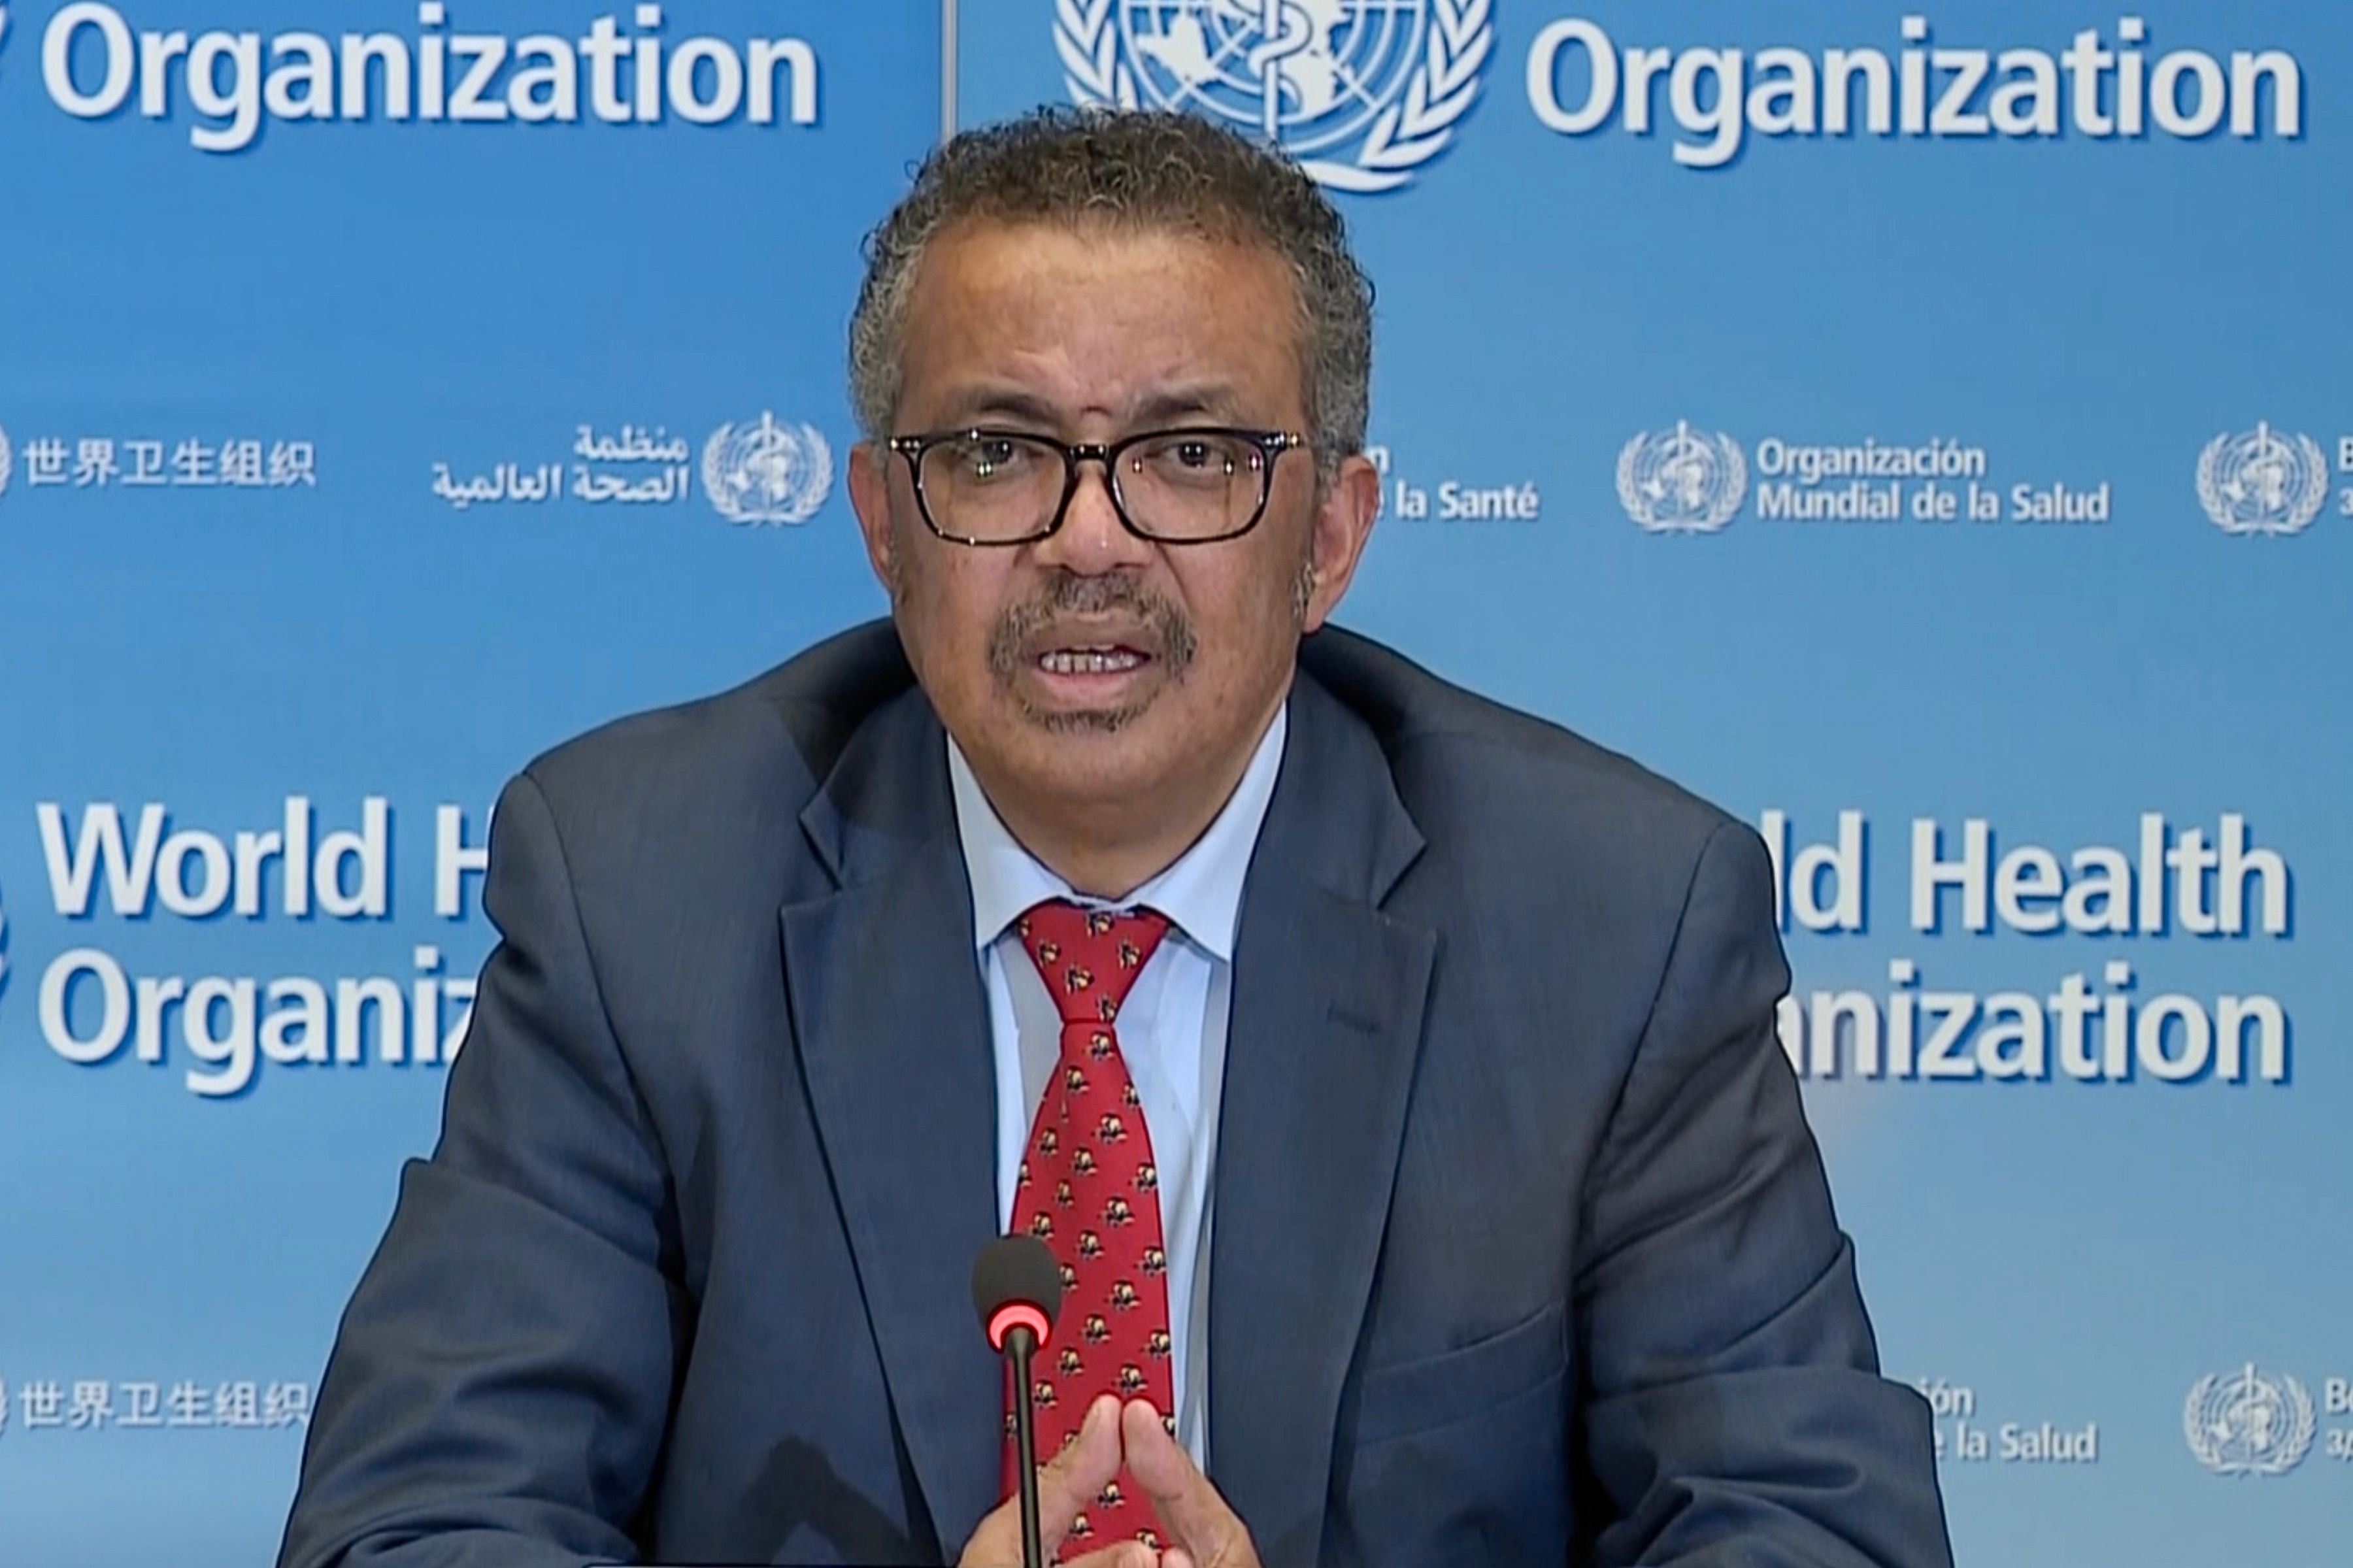 Taiwan protests WHO leader Tedros's accusations of racist remarks against him | Deccan Herald